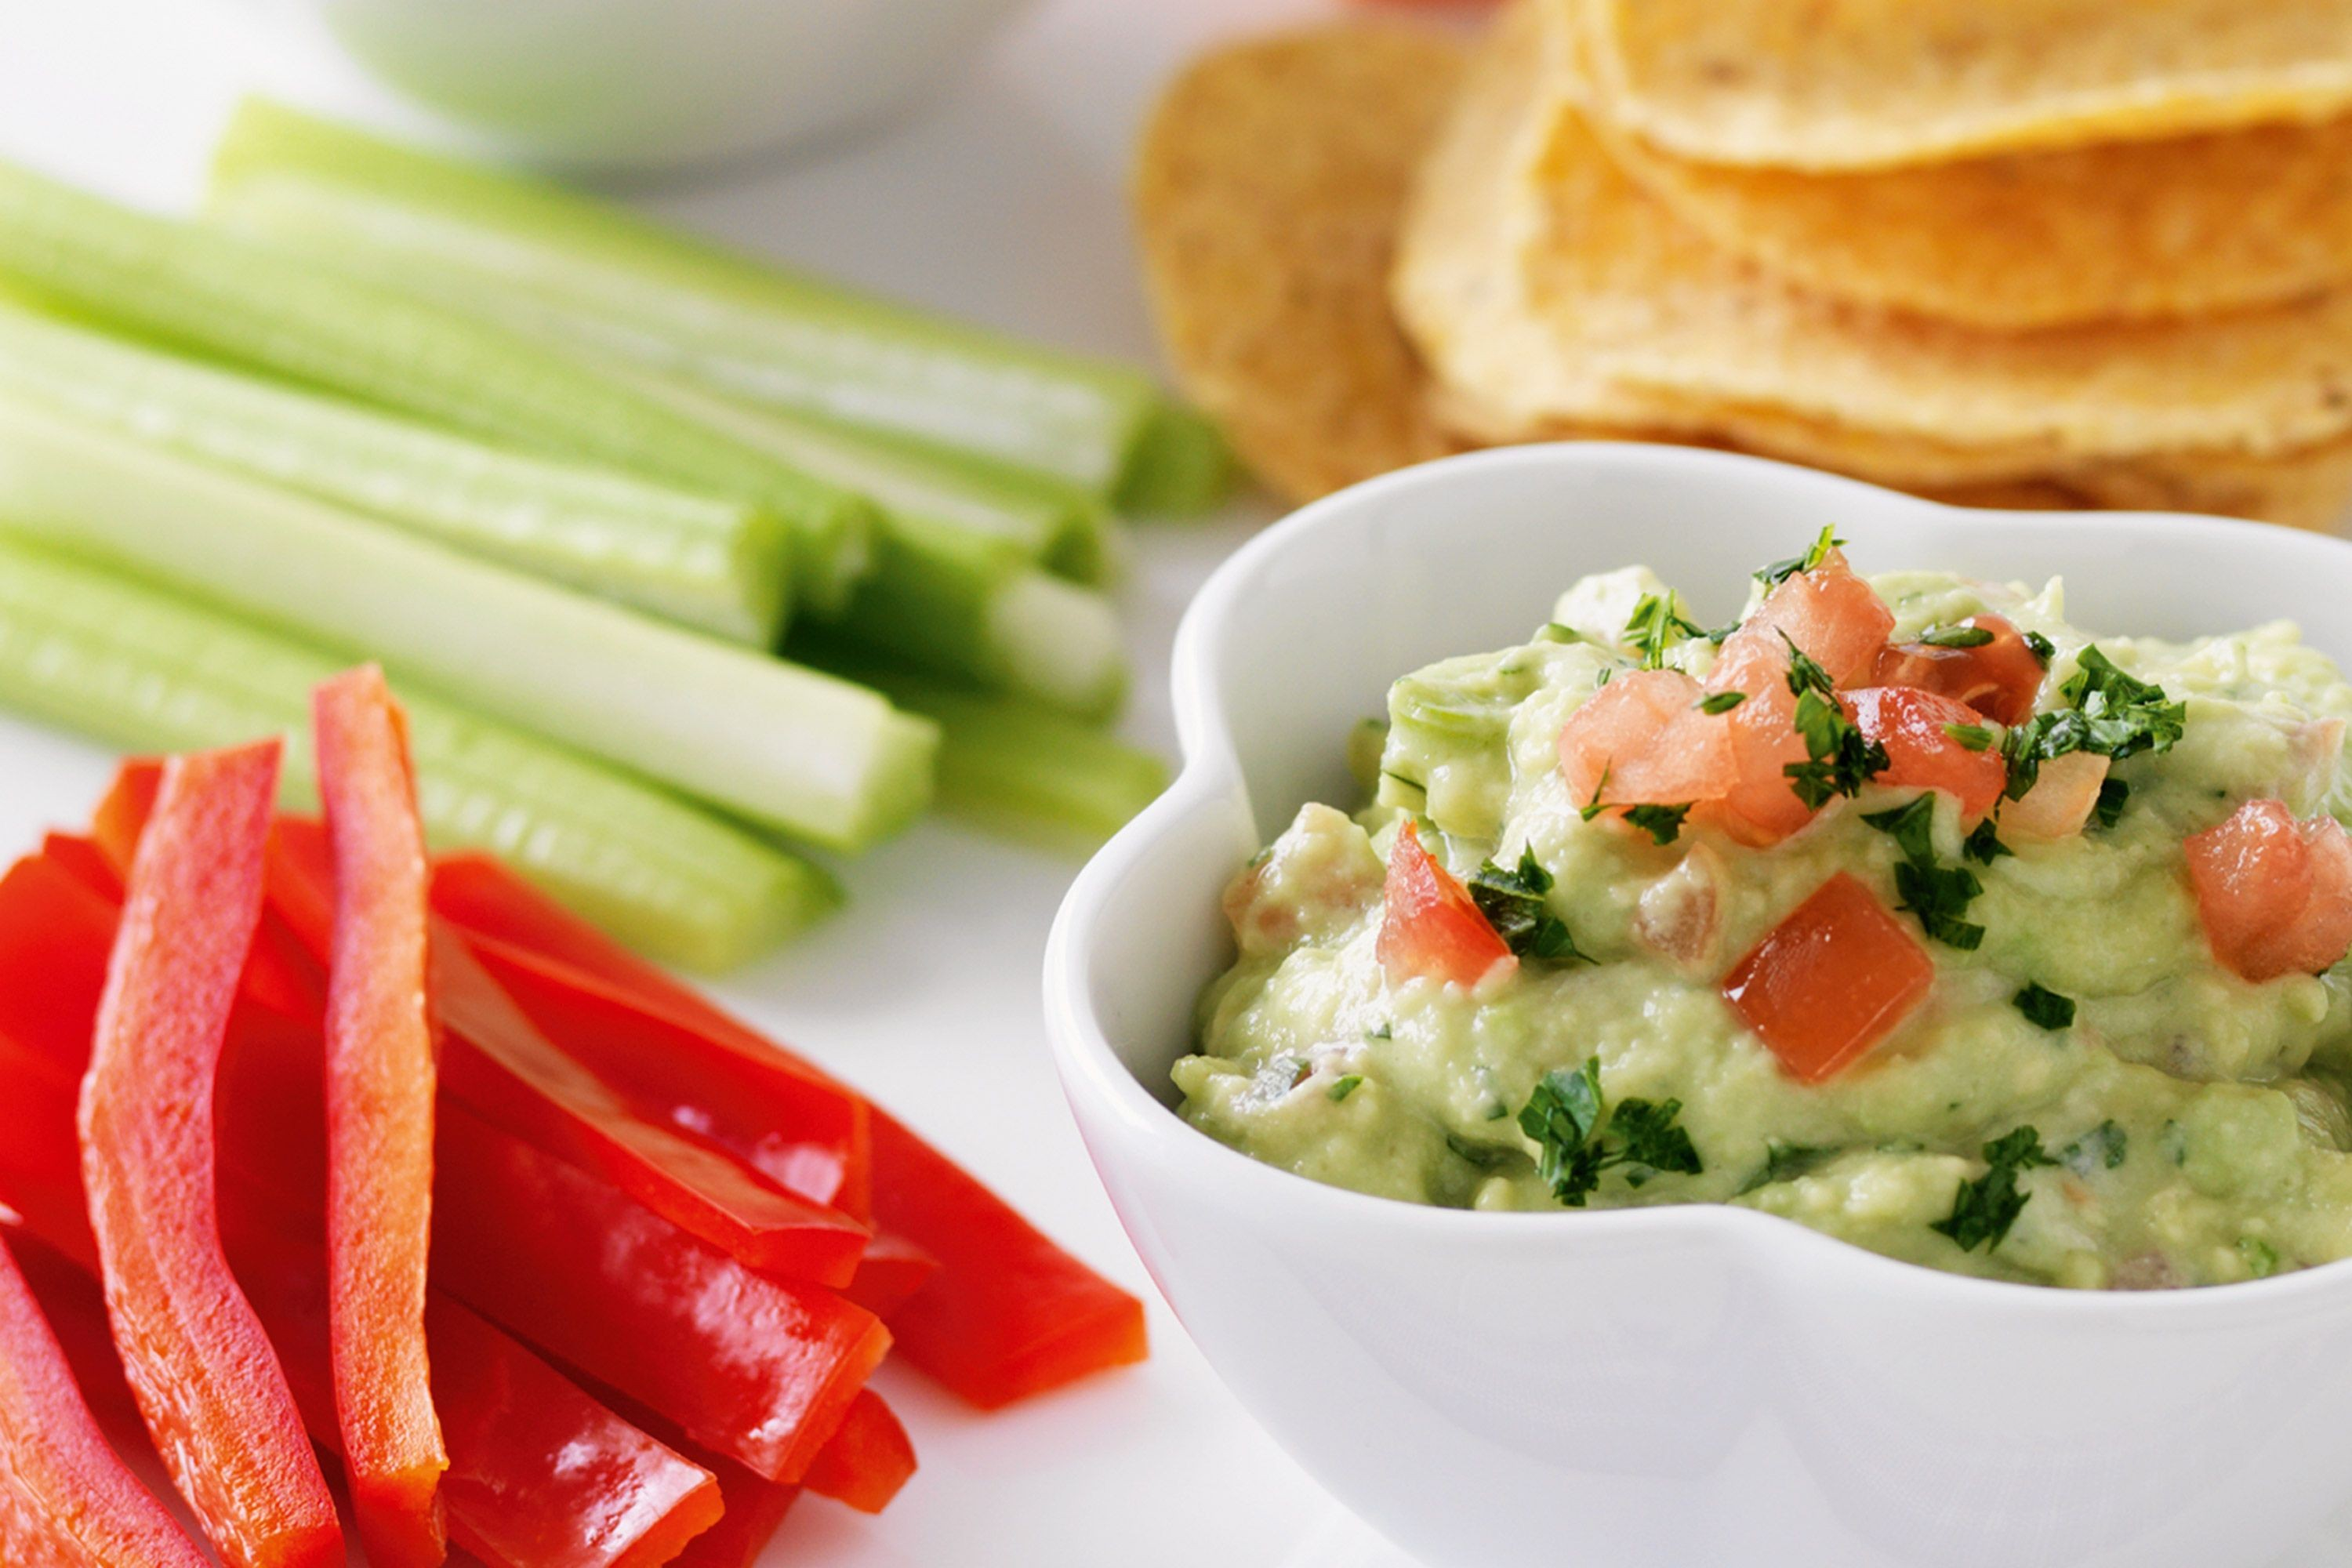 guacamole-with-vegie-sticks-77681-1